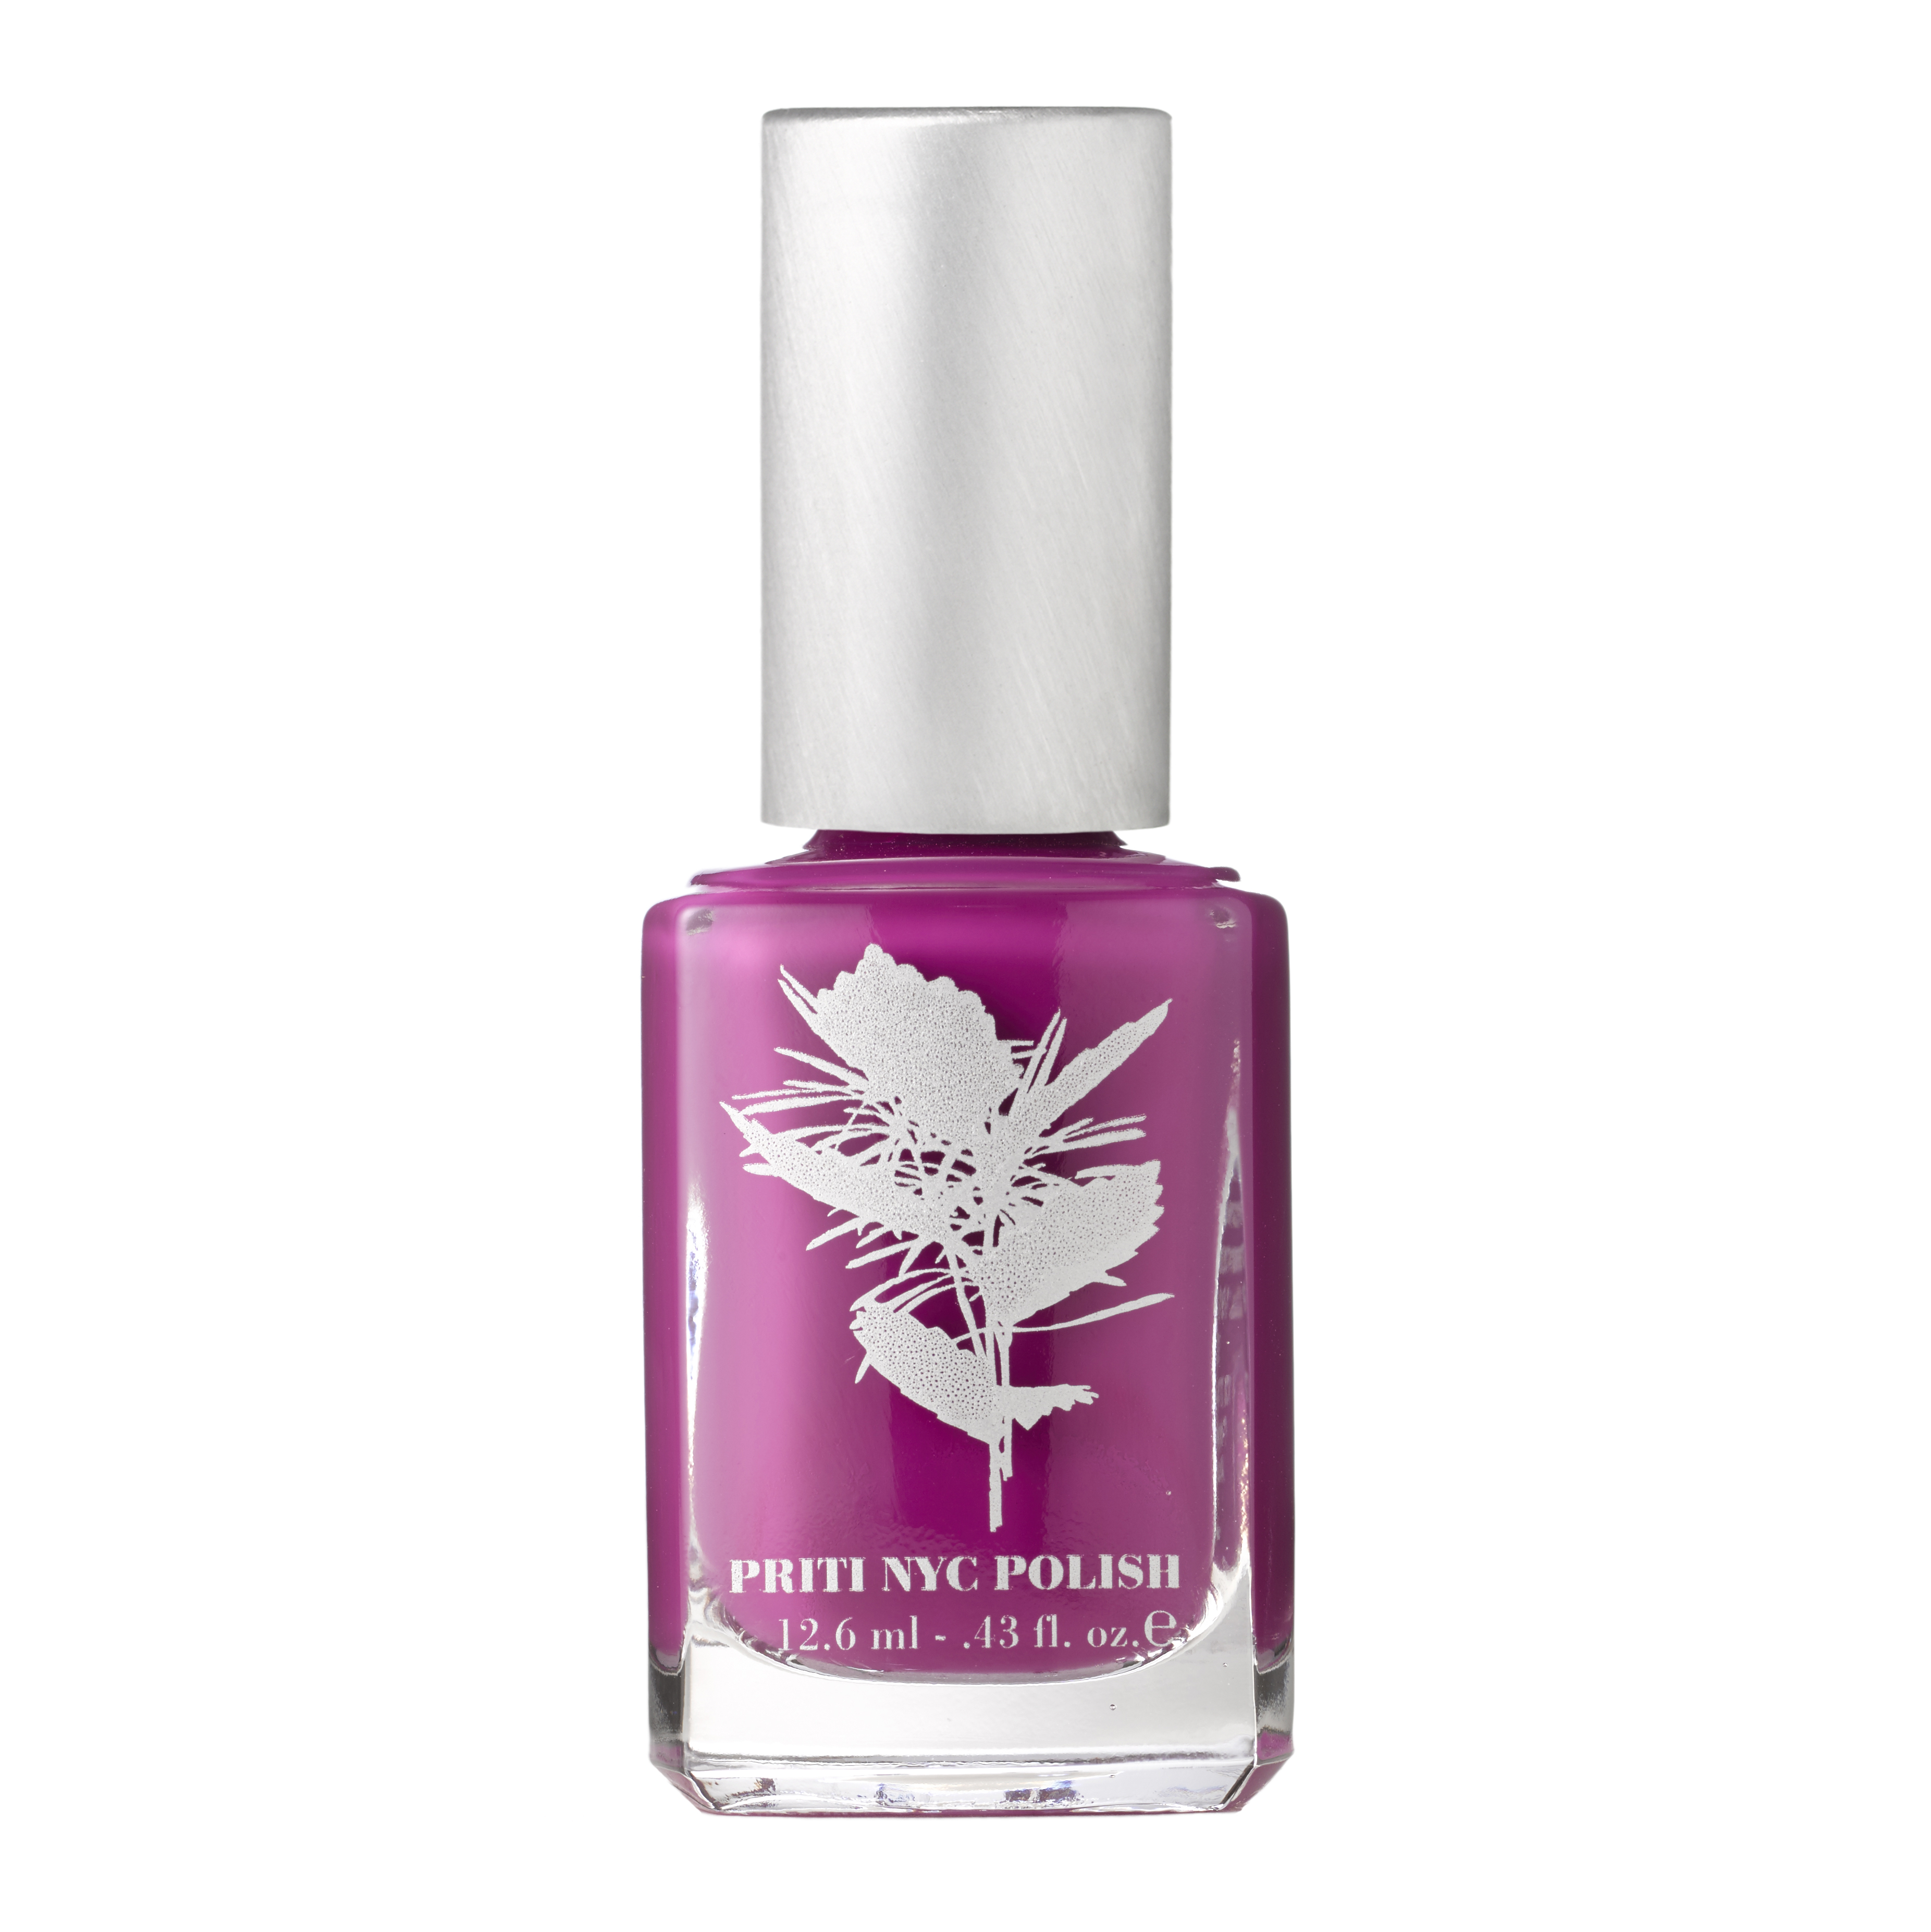 261 Poppy Mallow vegan nail polish